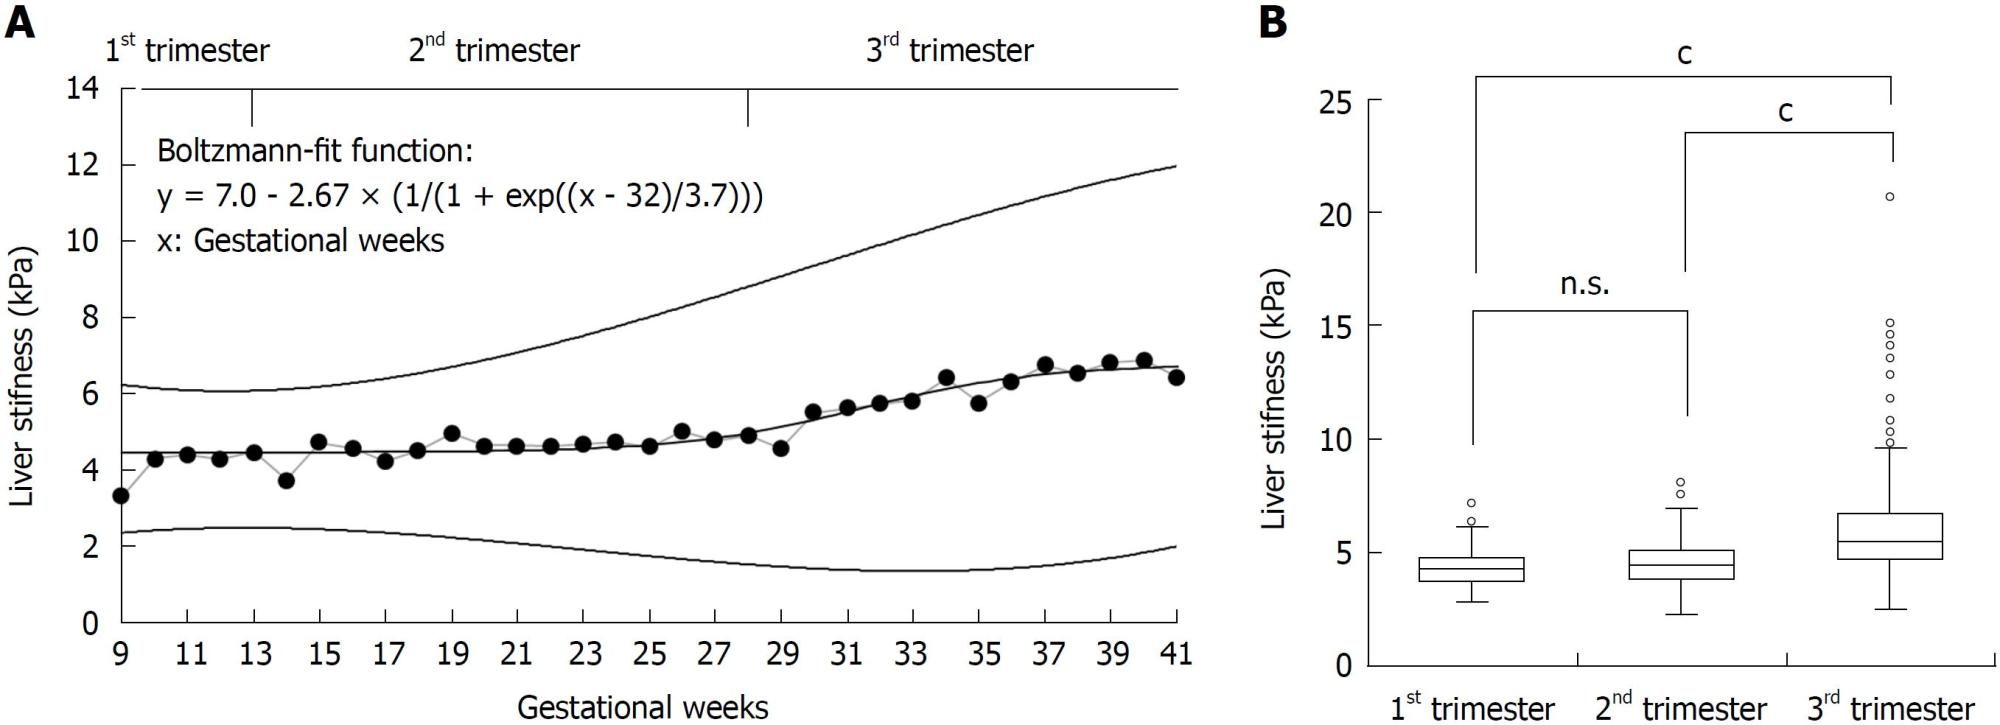 hight resolution of figure 2 liver stiffness increased almost exclusively in the third trimester of normal pregnancy a mean ls as a function of gestational week 9 to 42 of